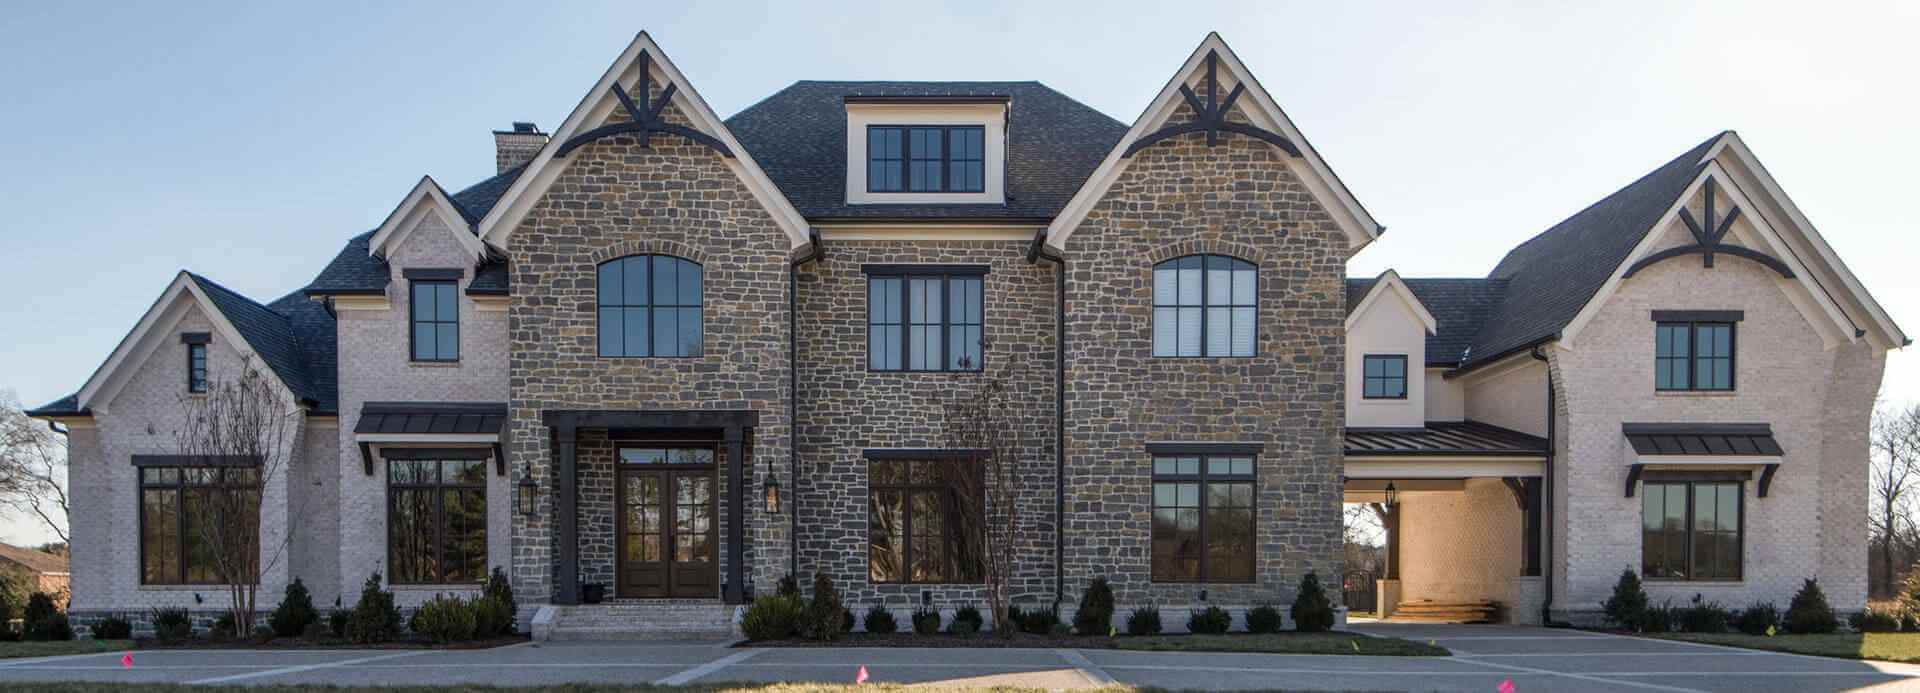 Franklin custom home builder